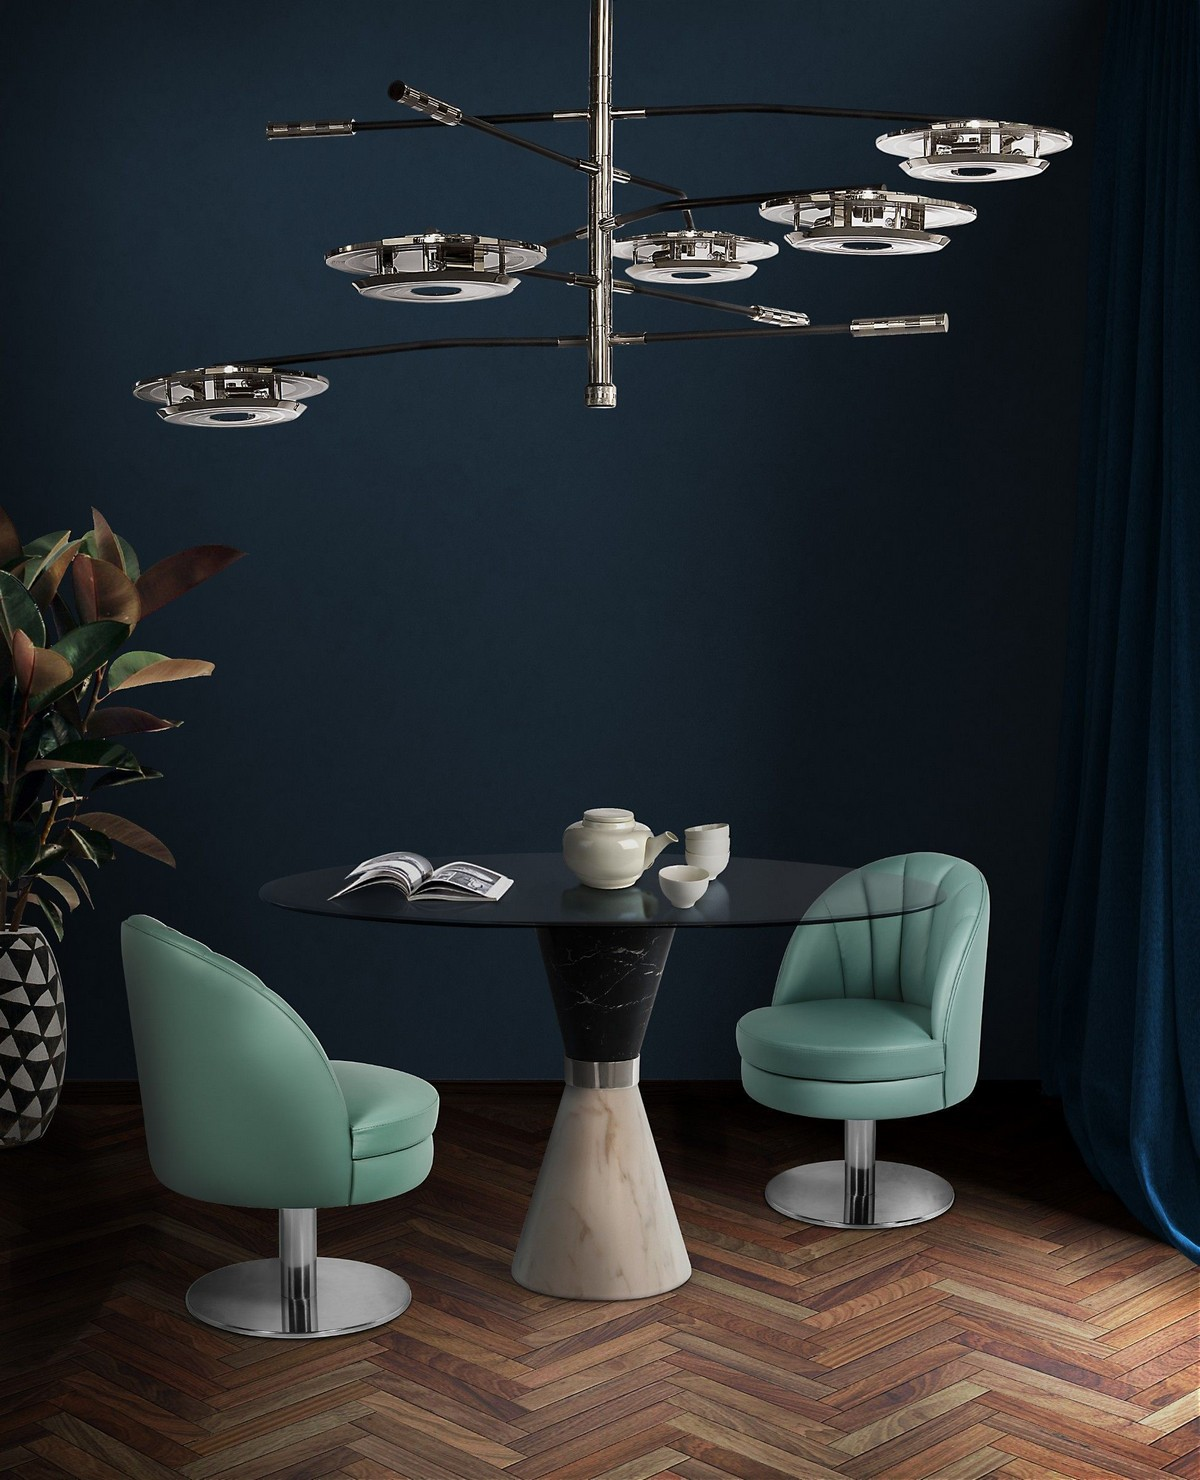 Covet Outlet: New Dining Table Entries dining table Covet Outlet: New Dining Table Entries vinicius